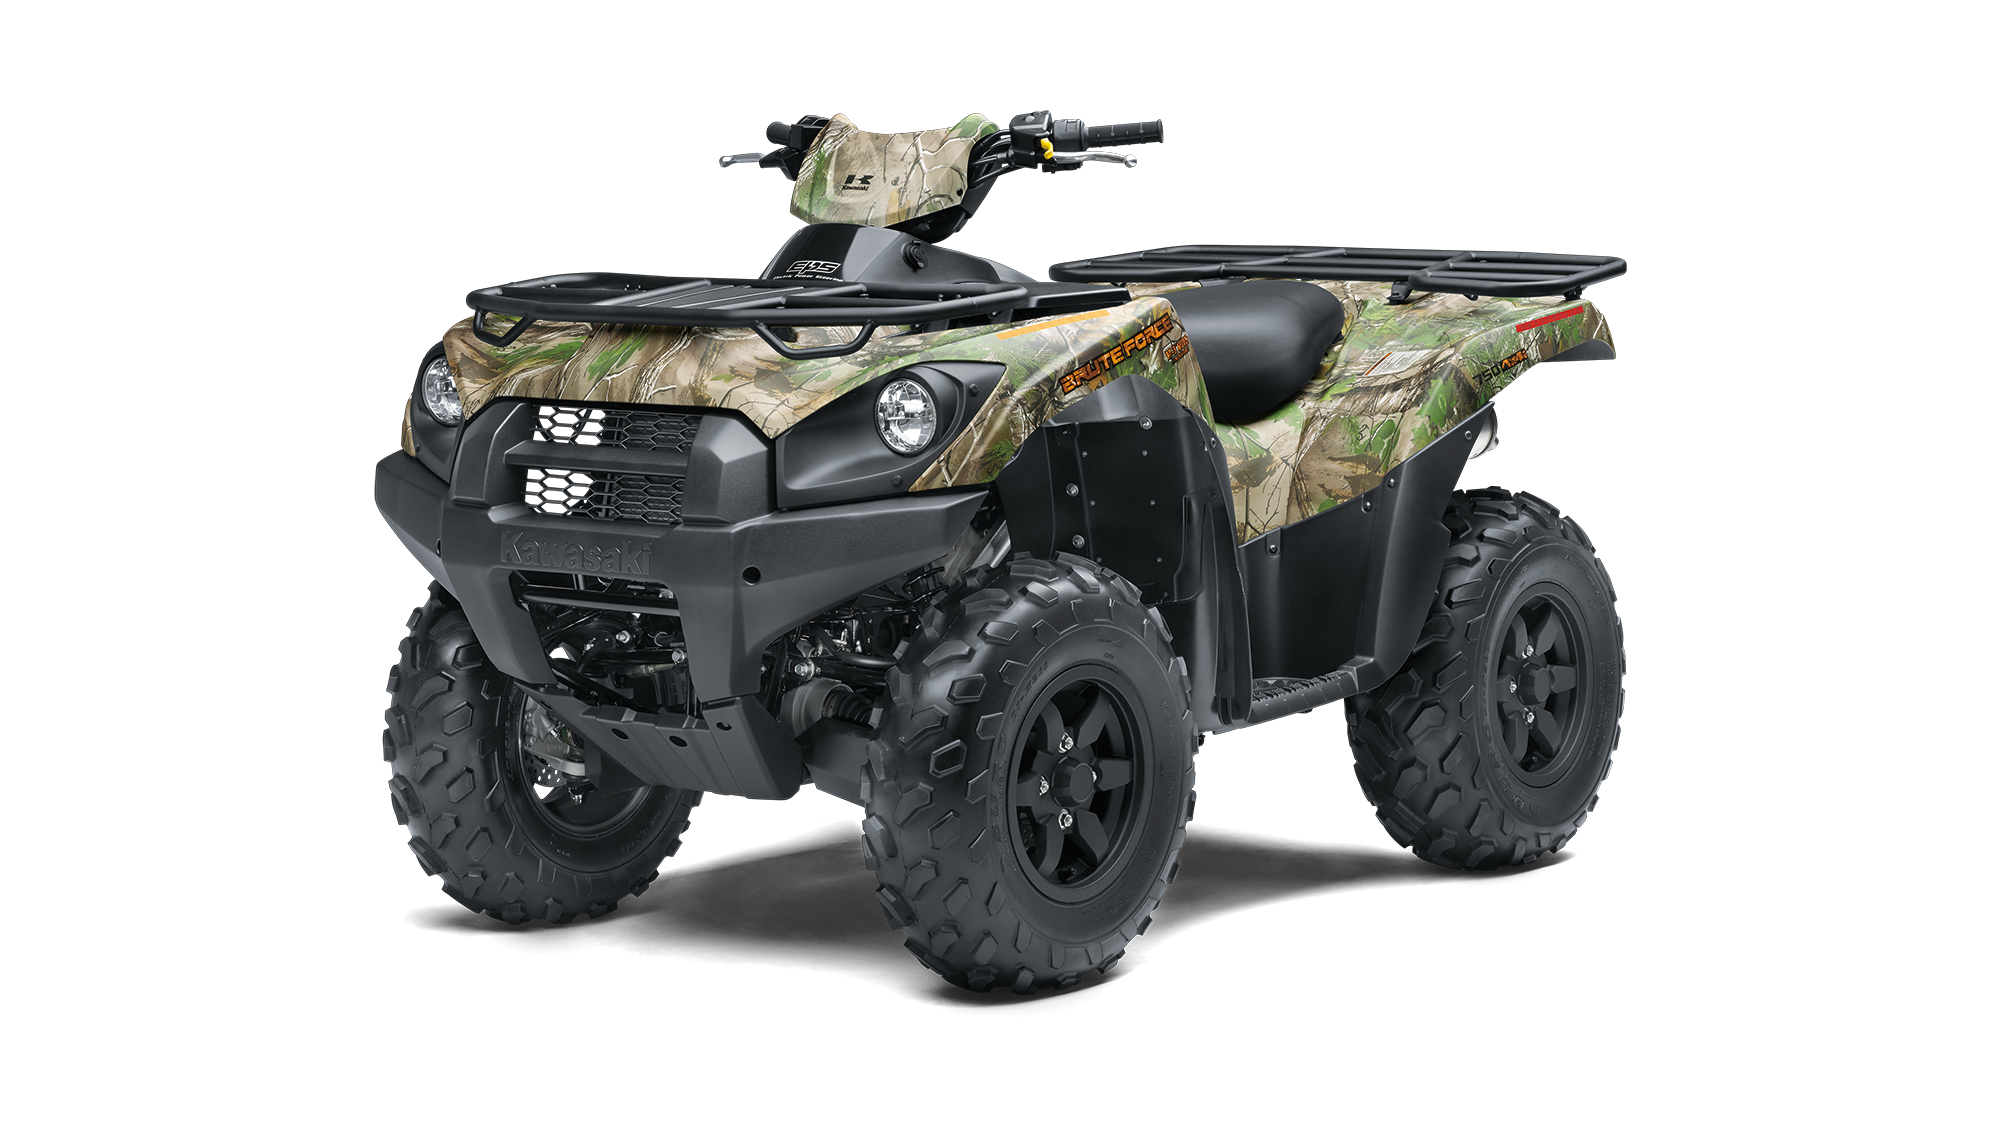 2020 Brute Force® 750 4x4i EPS Camo